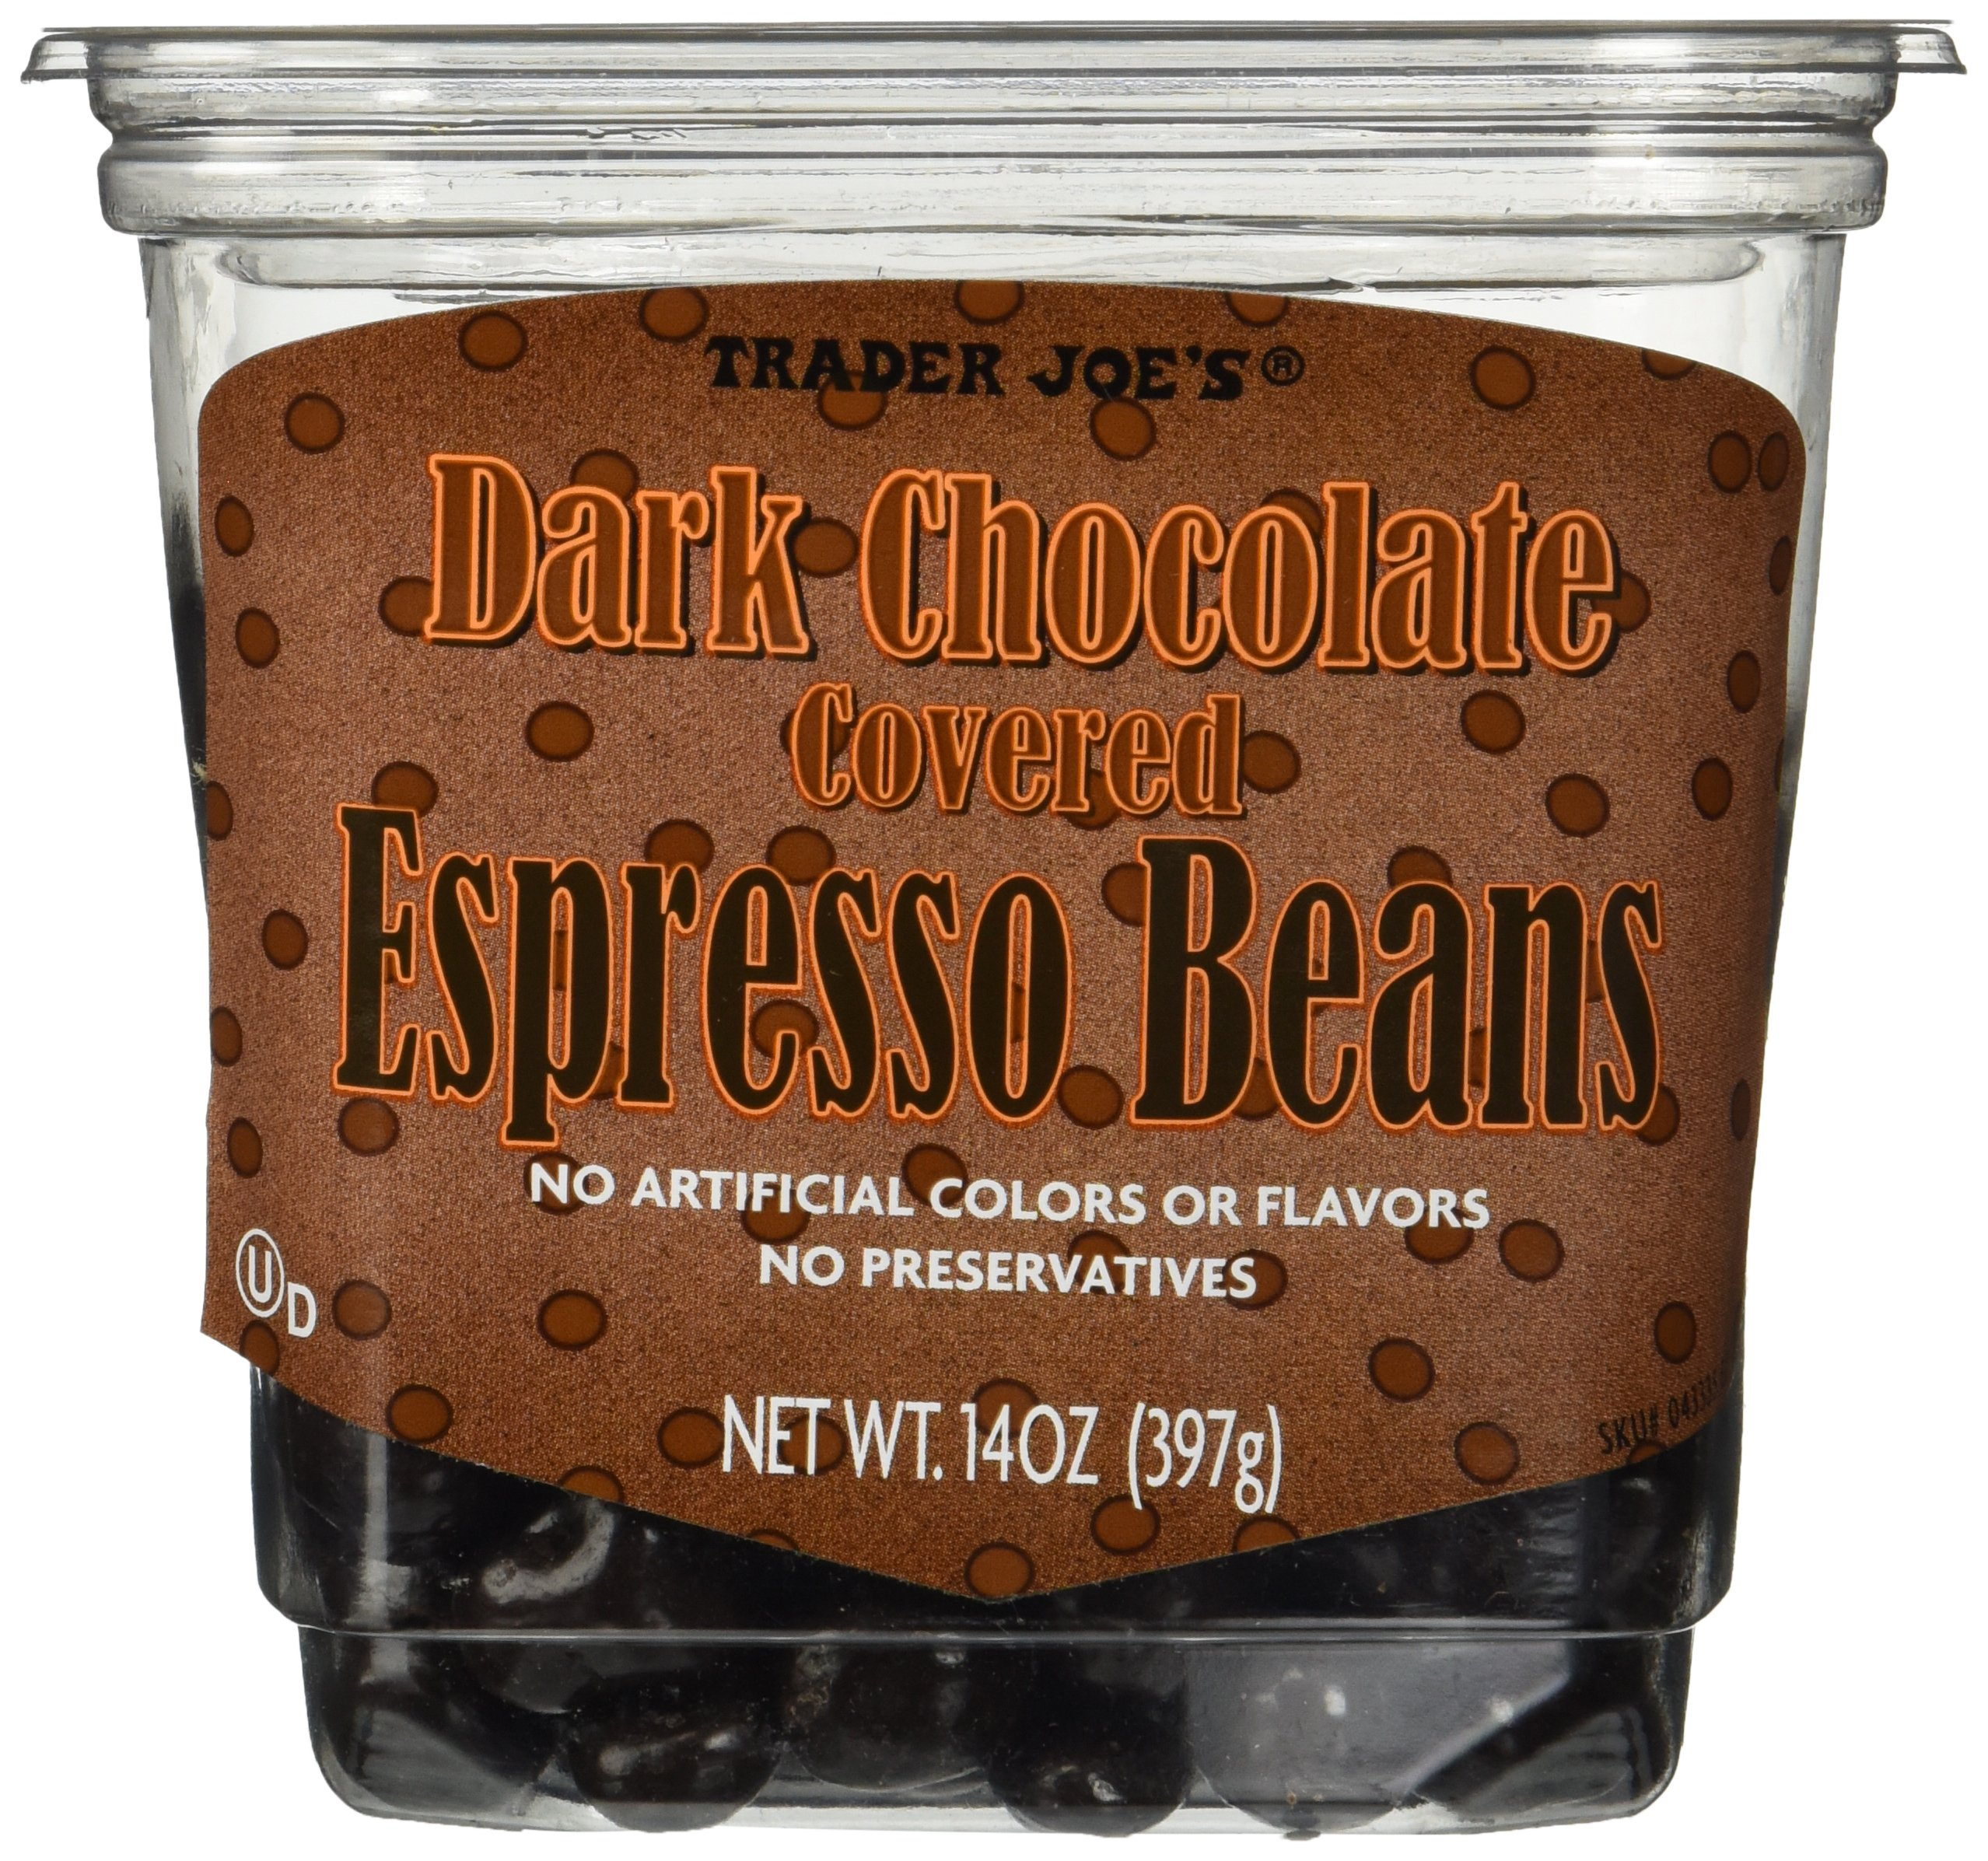 Trader Joe's Dark Chocolate Covered Espresso Beans 14 oz. by Trader Joe's